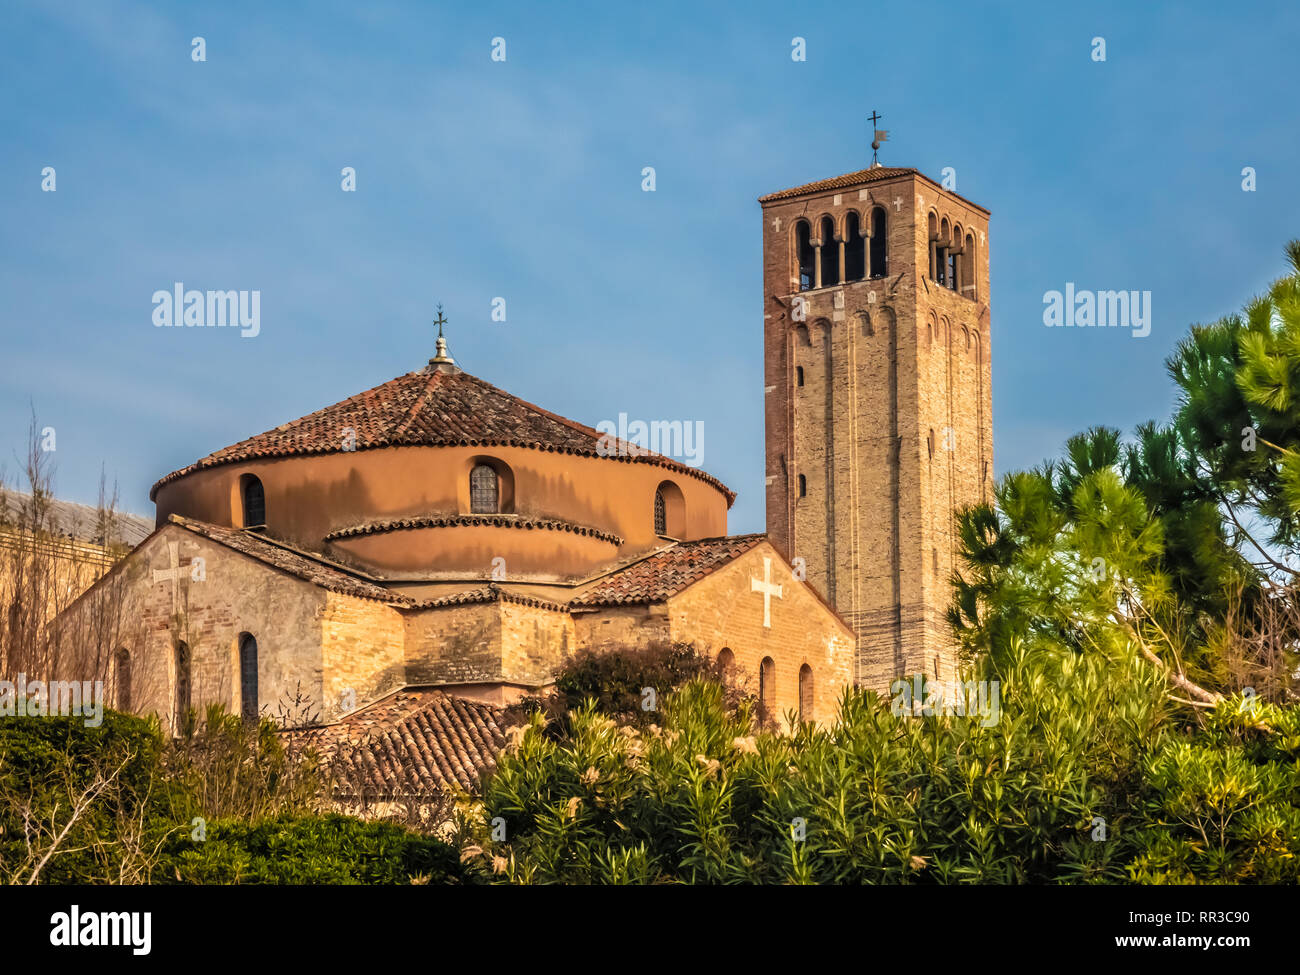 Torcello (Torcellum) a sparsely populated island at the northern end of the Venetian Lagoon near Burano, Venice, Veneto, north-eastern Italy. IIt was  - Stock Image